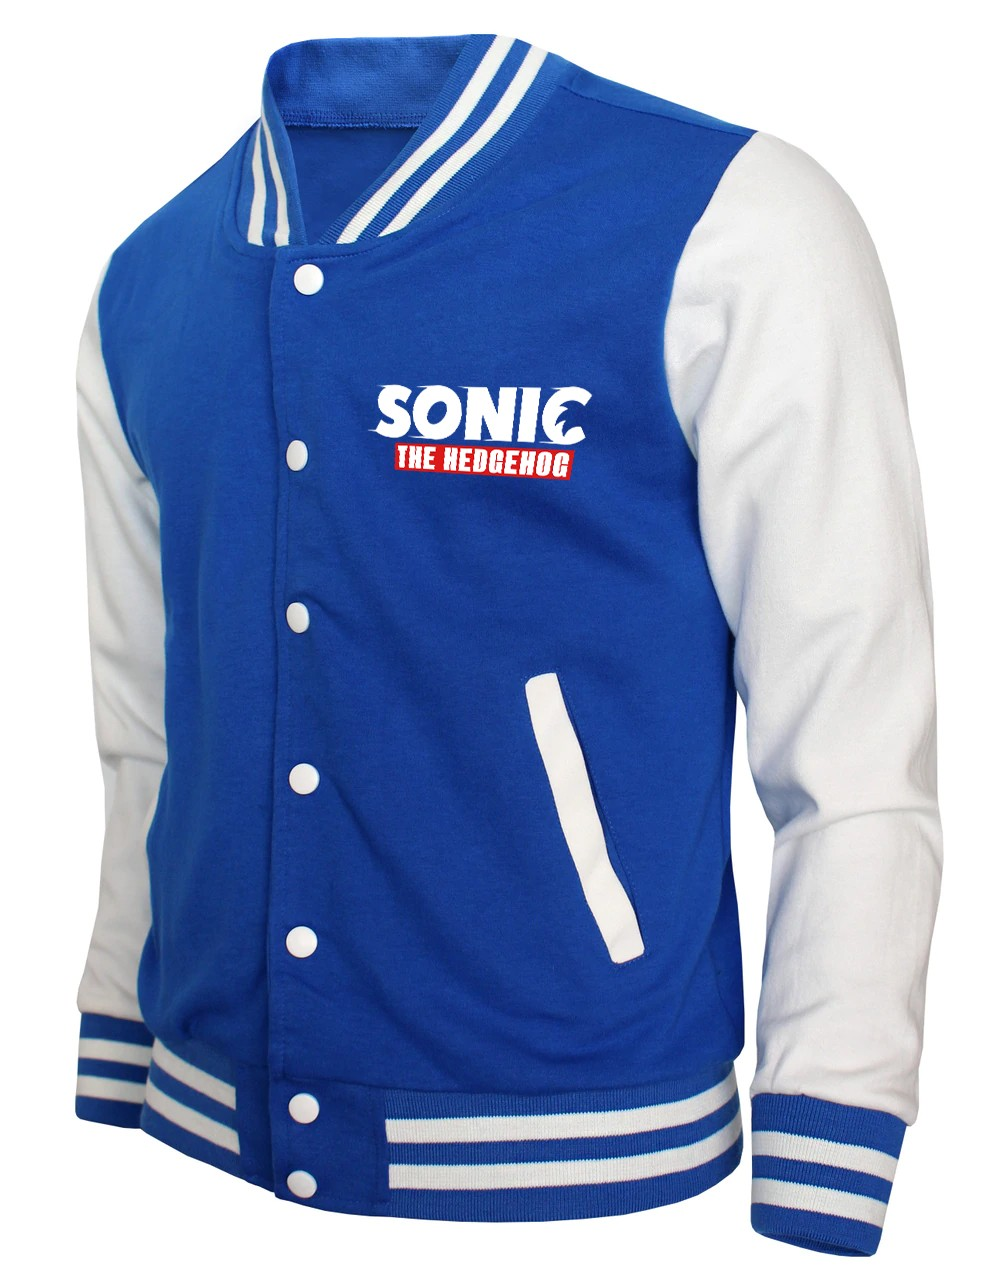 Sonic The Hedgehog Blue Bomber Jacket Right Jackets